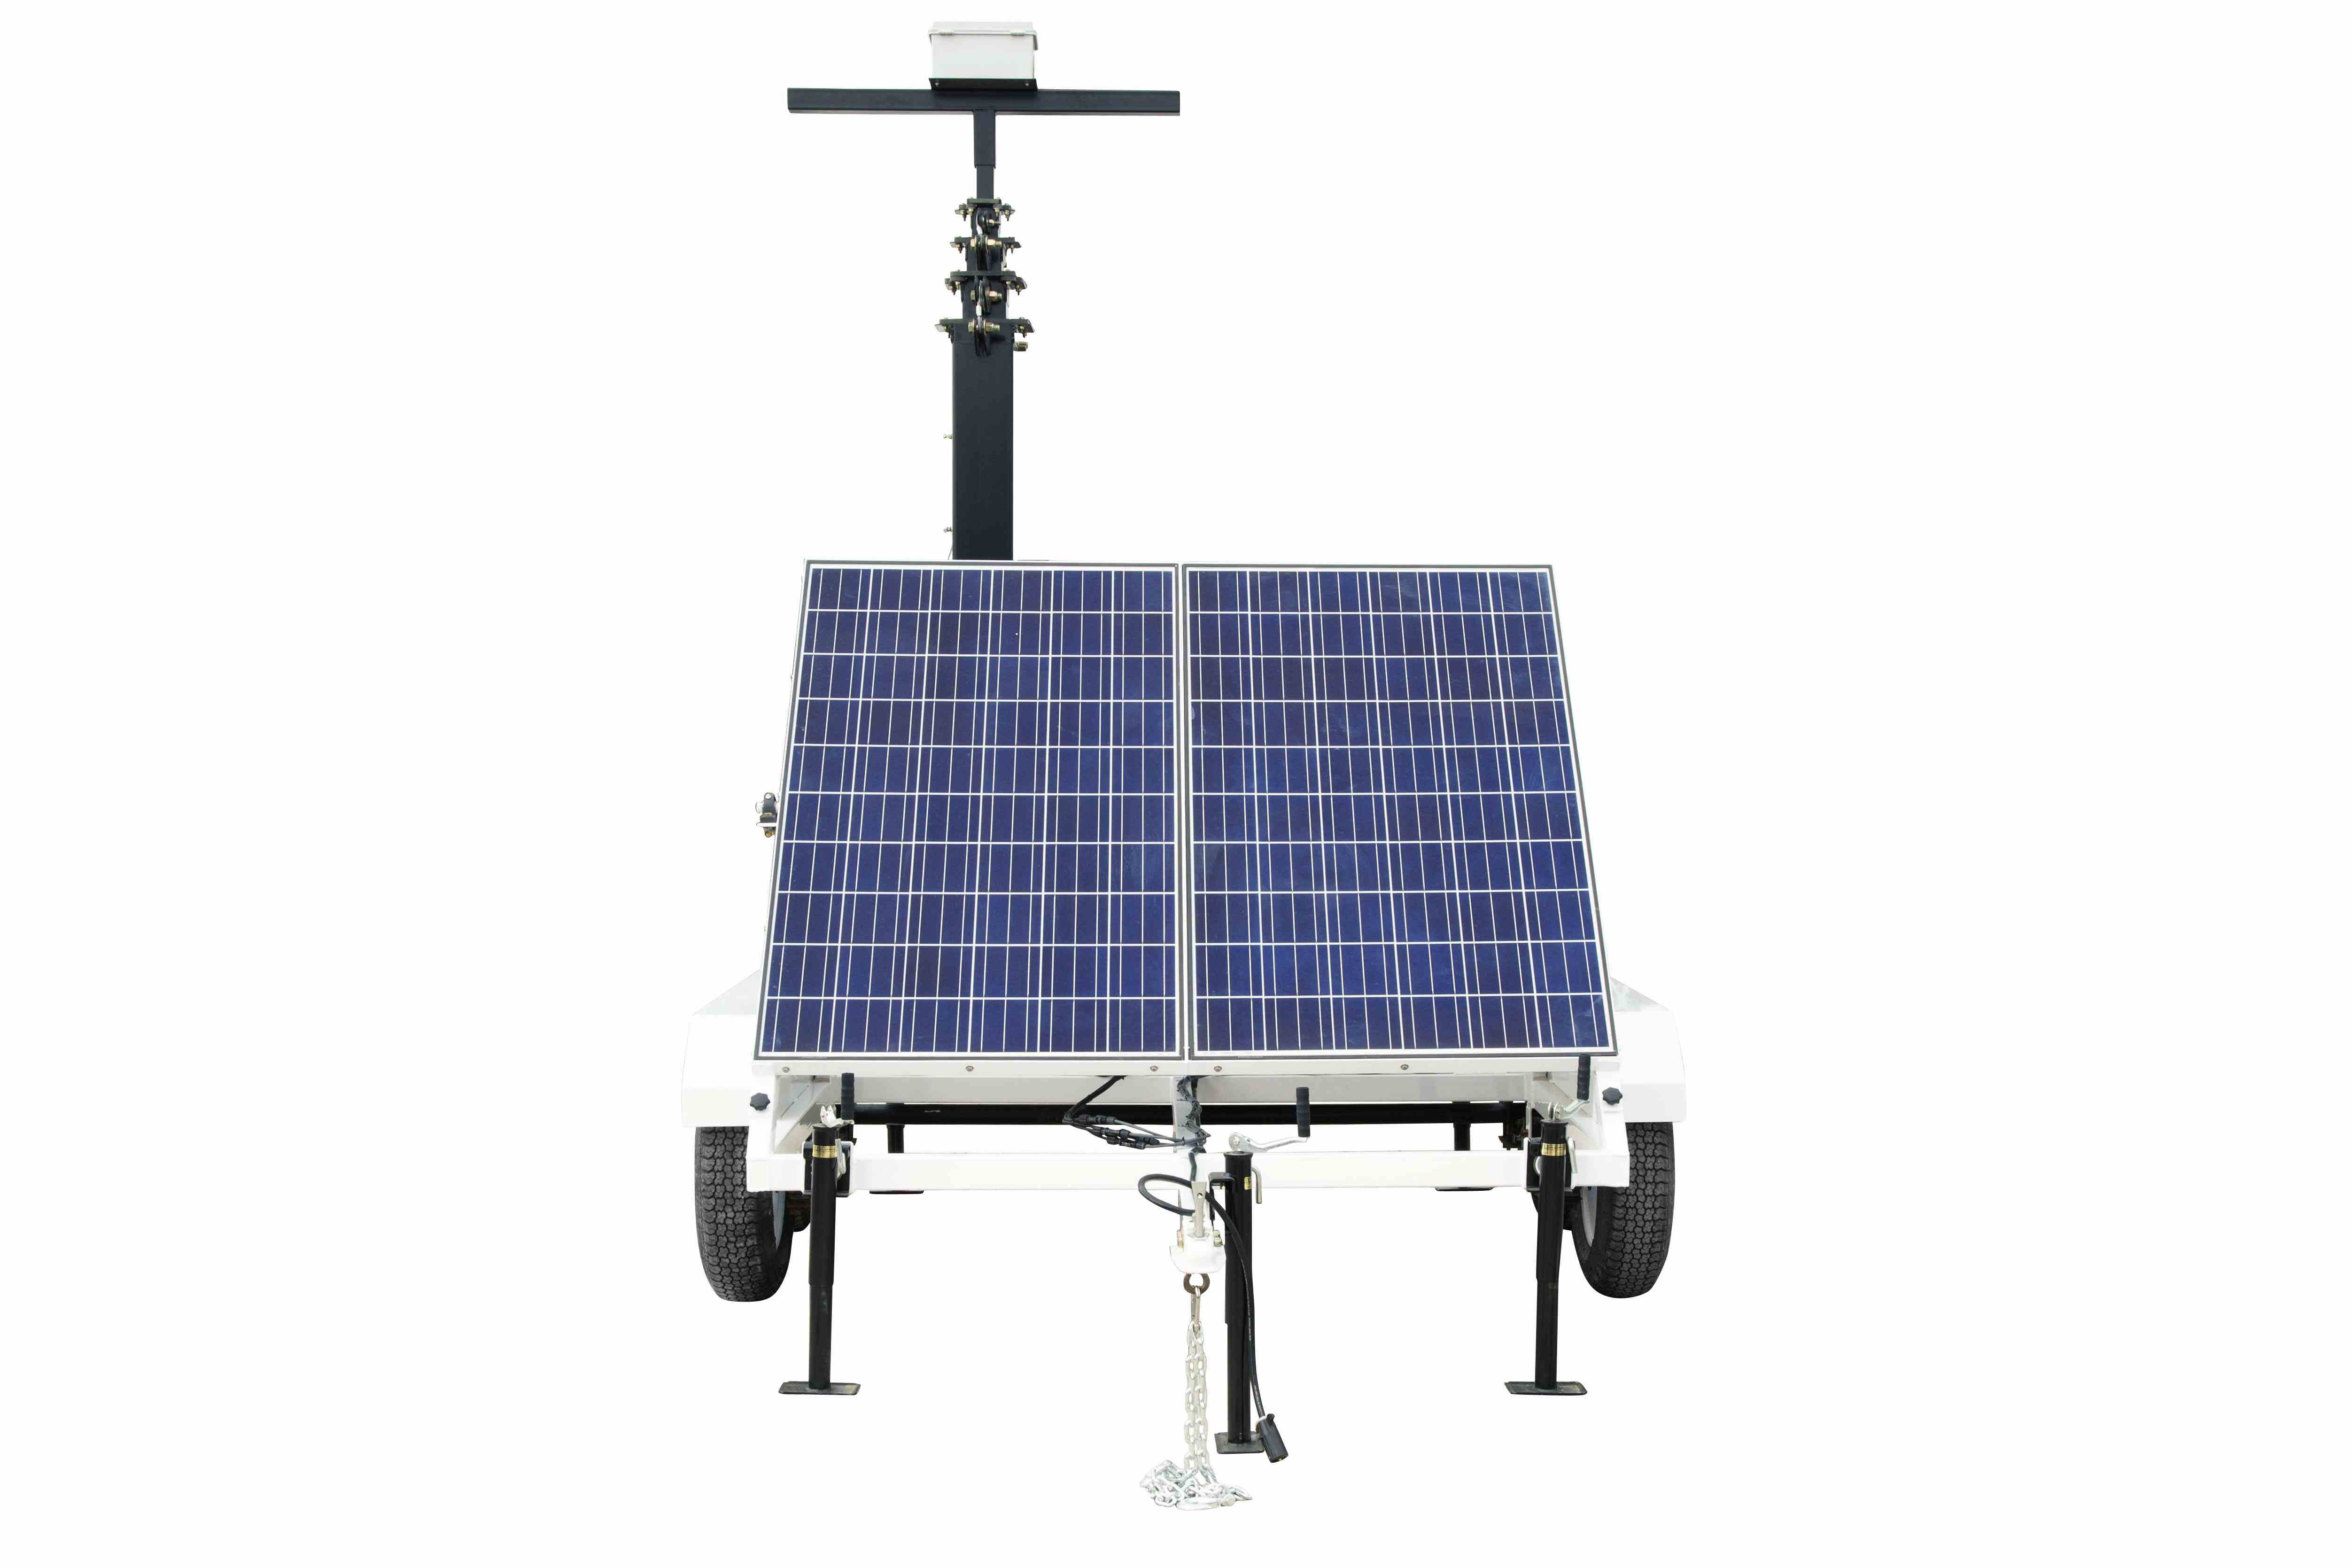 Portable Solar 30 Light Tower 12v 250ah Gel Cell Battery W Charger Tandem Axle Trailer